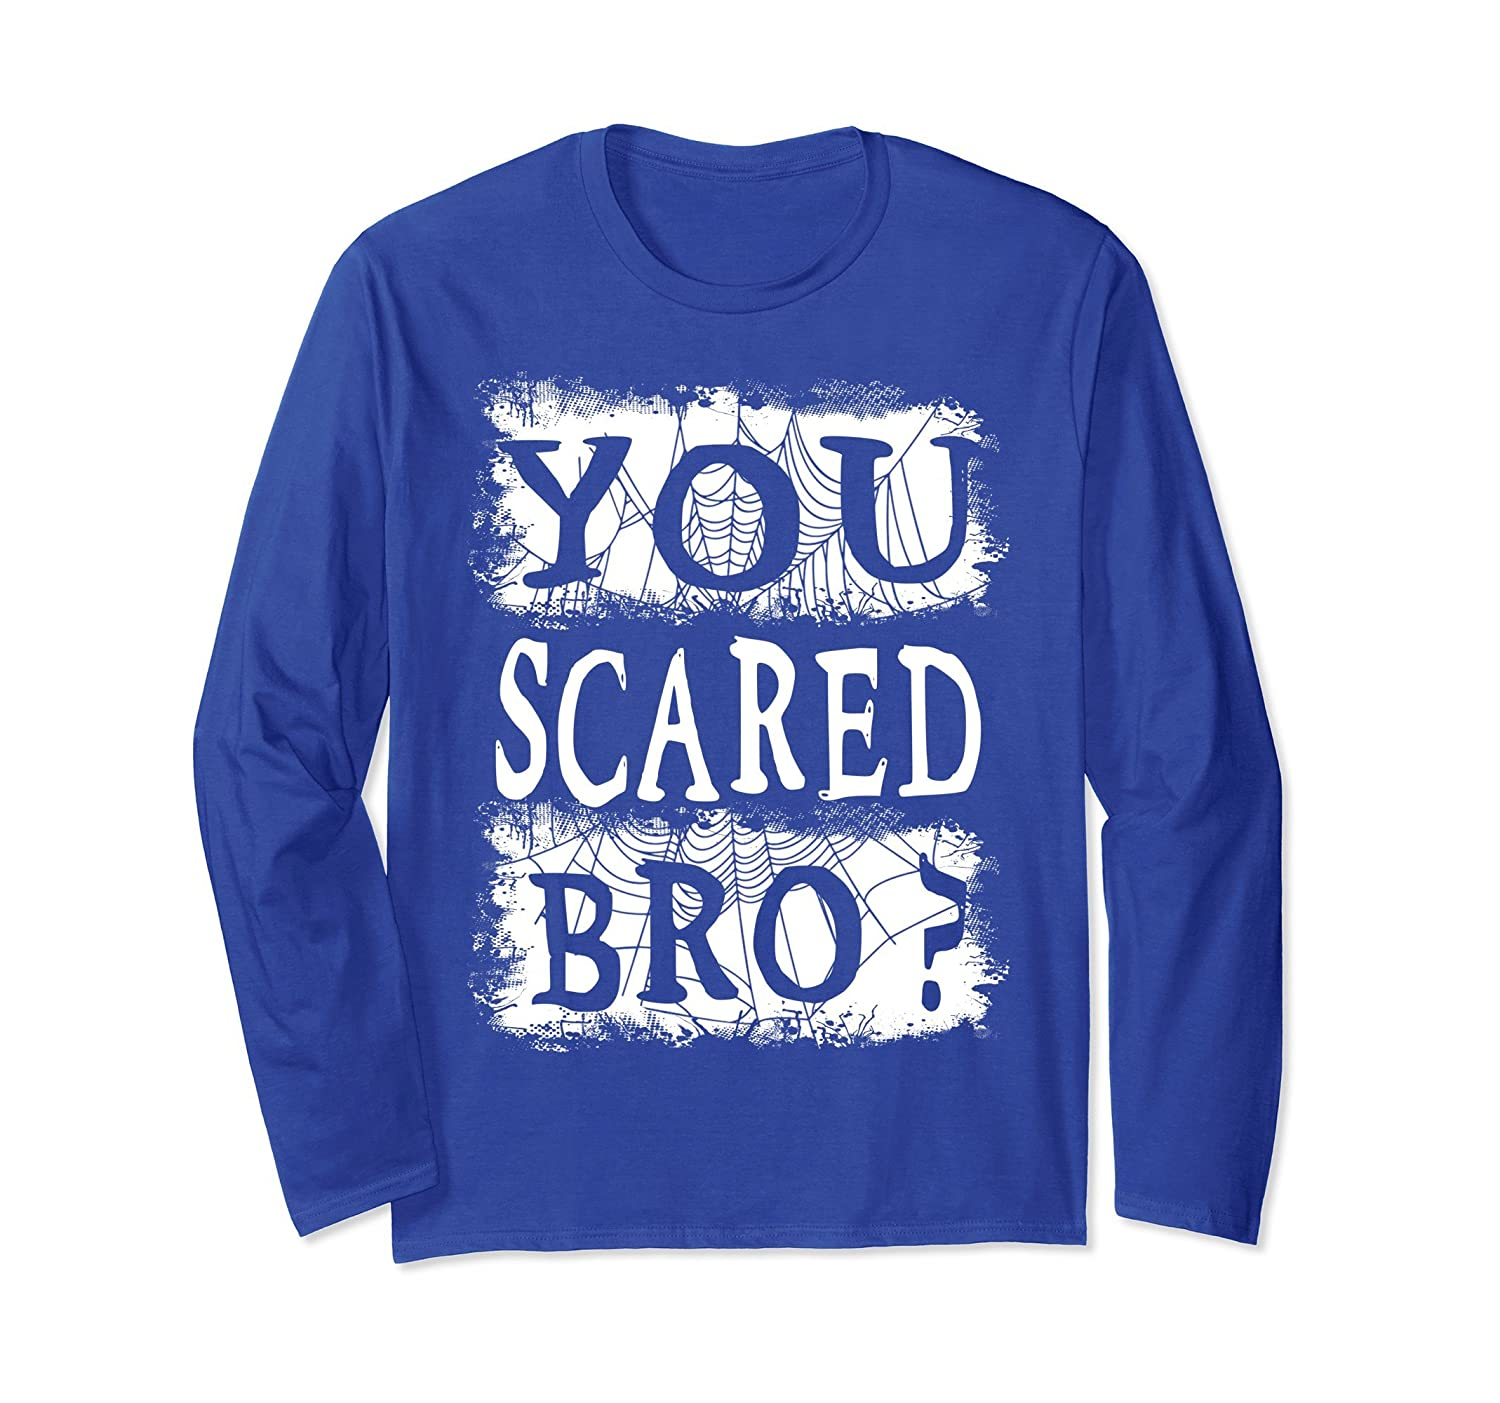 You Scared Bro Long Sleeve Shirt Scary Spiderweb-mt